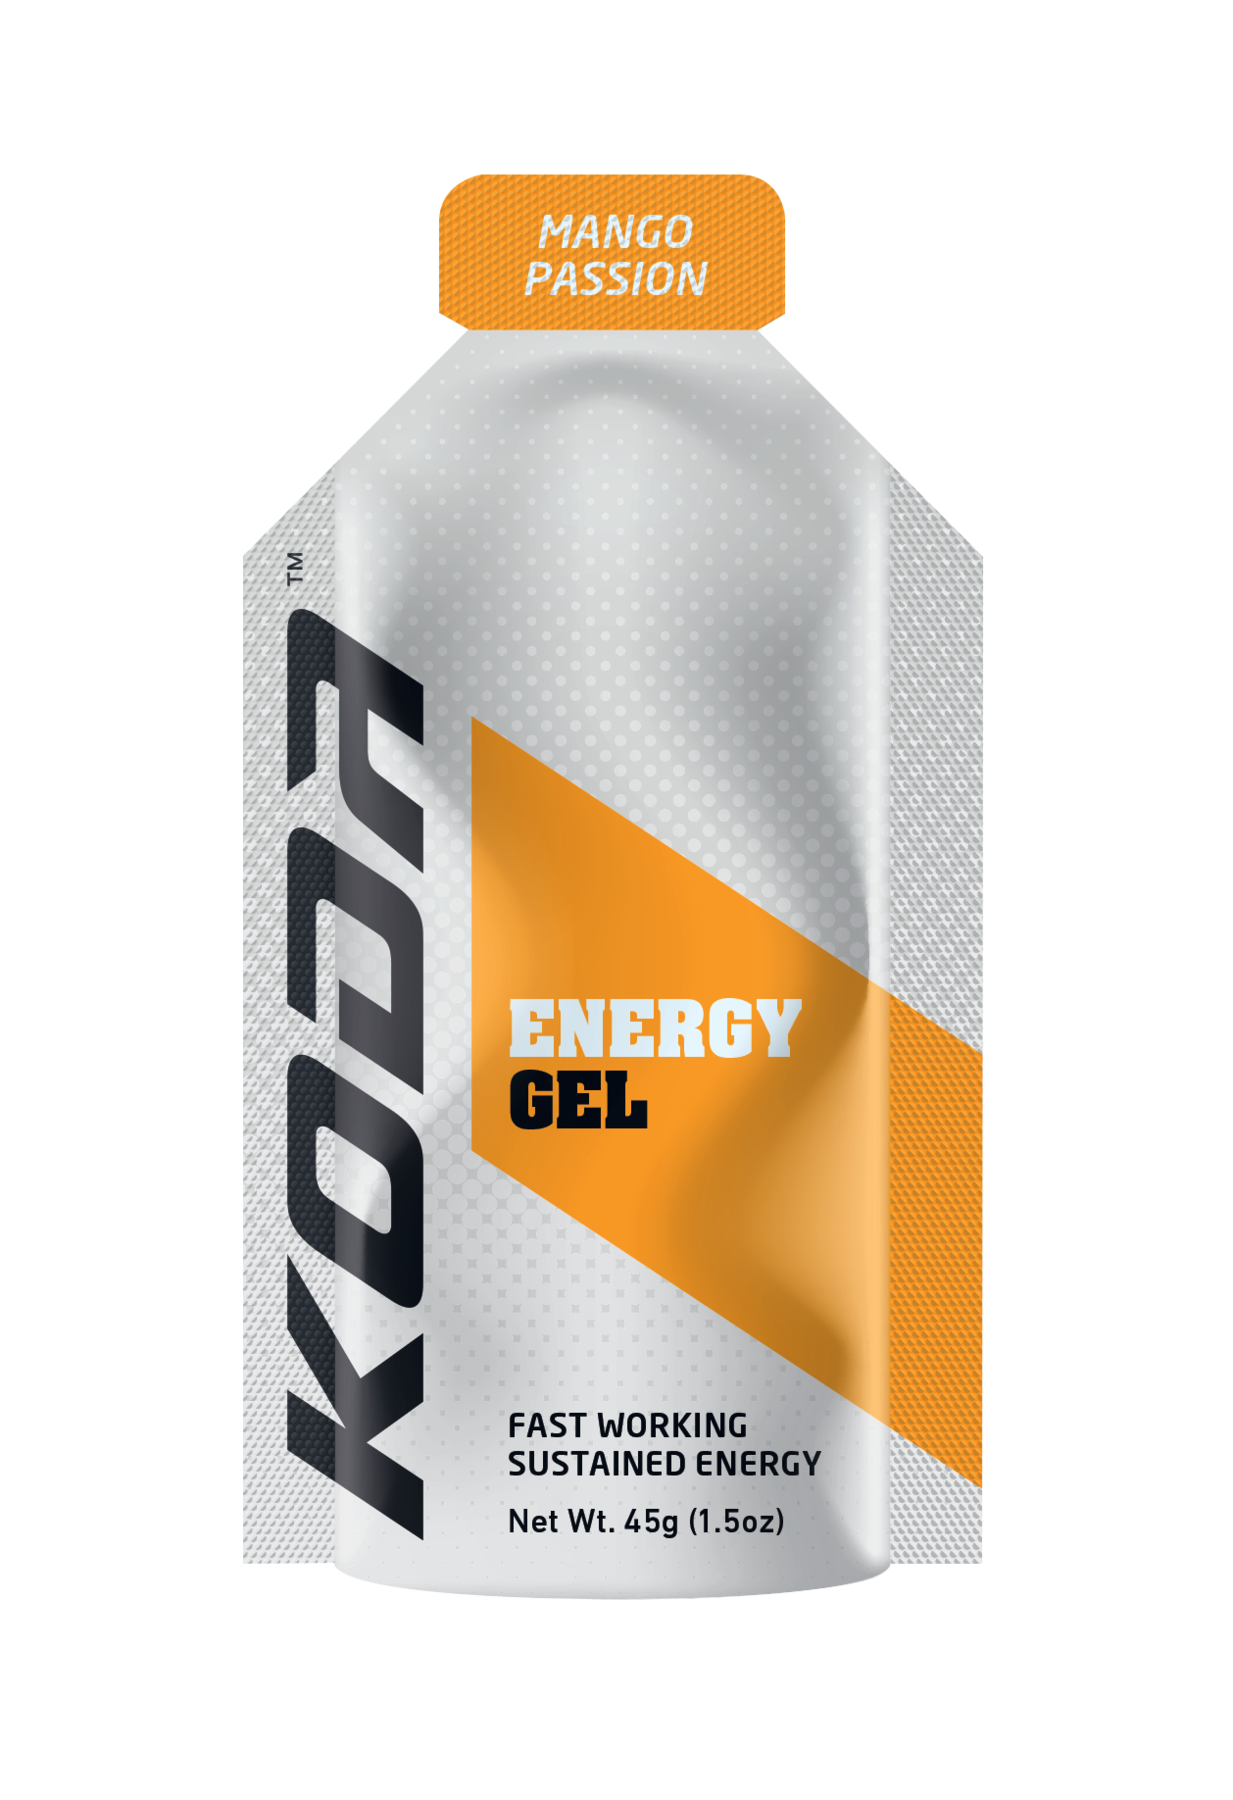 Koda Energy Gels Box Qty (24 Pack) - Mango Passion - Find Your Feet Australia Hobart Launceston Tasmania